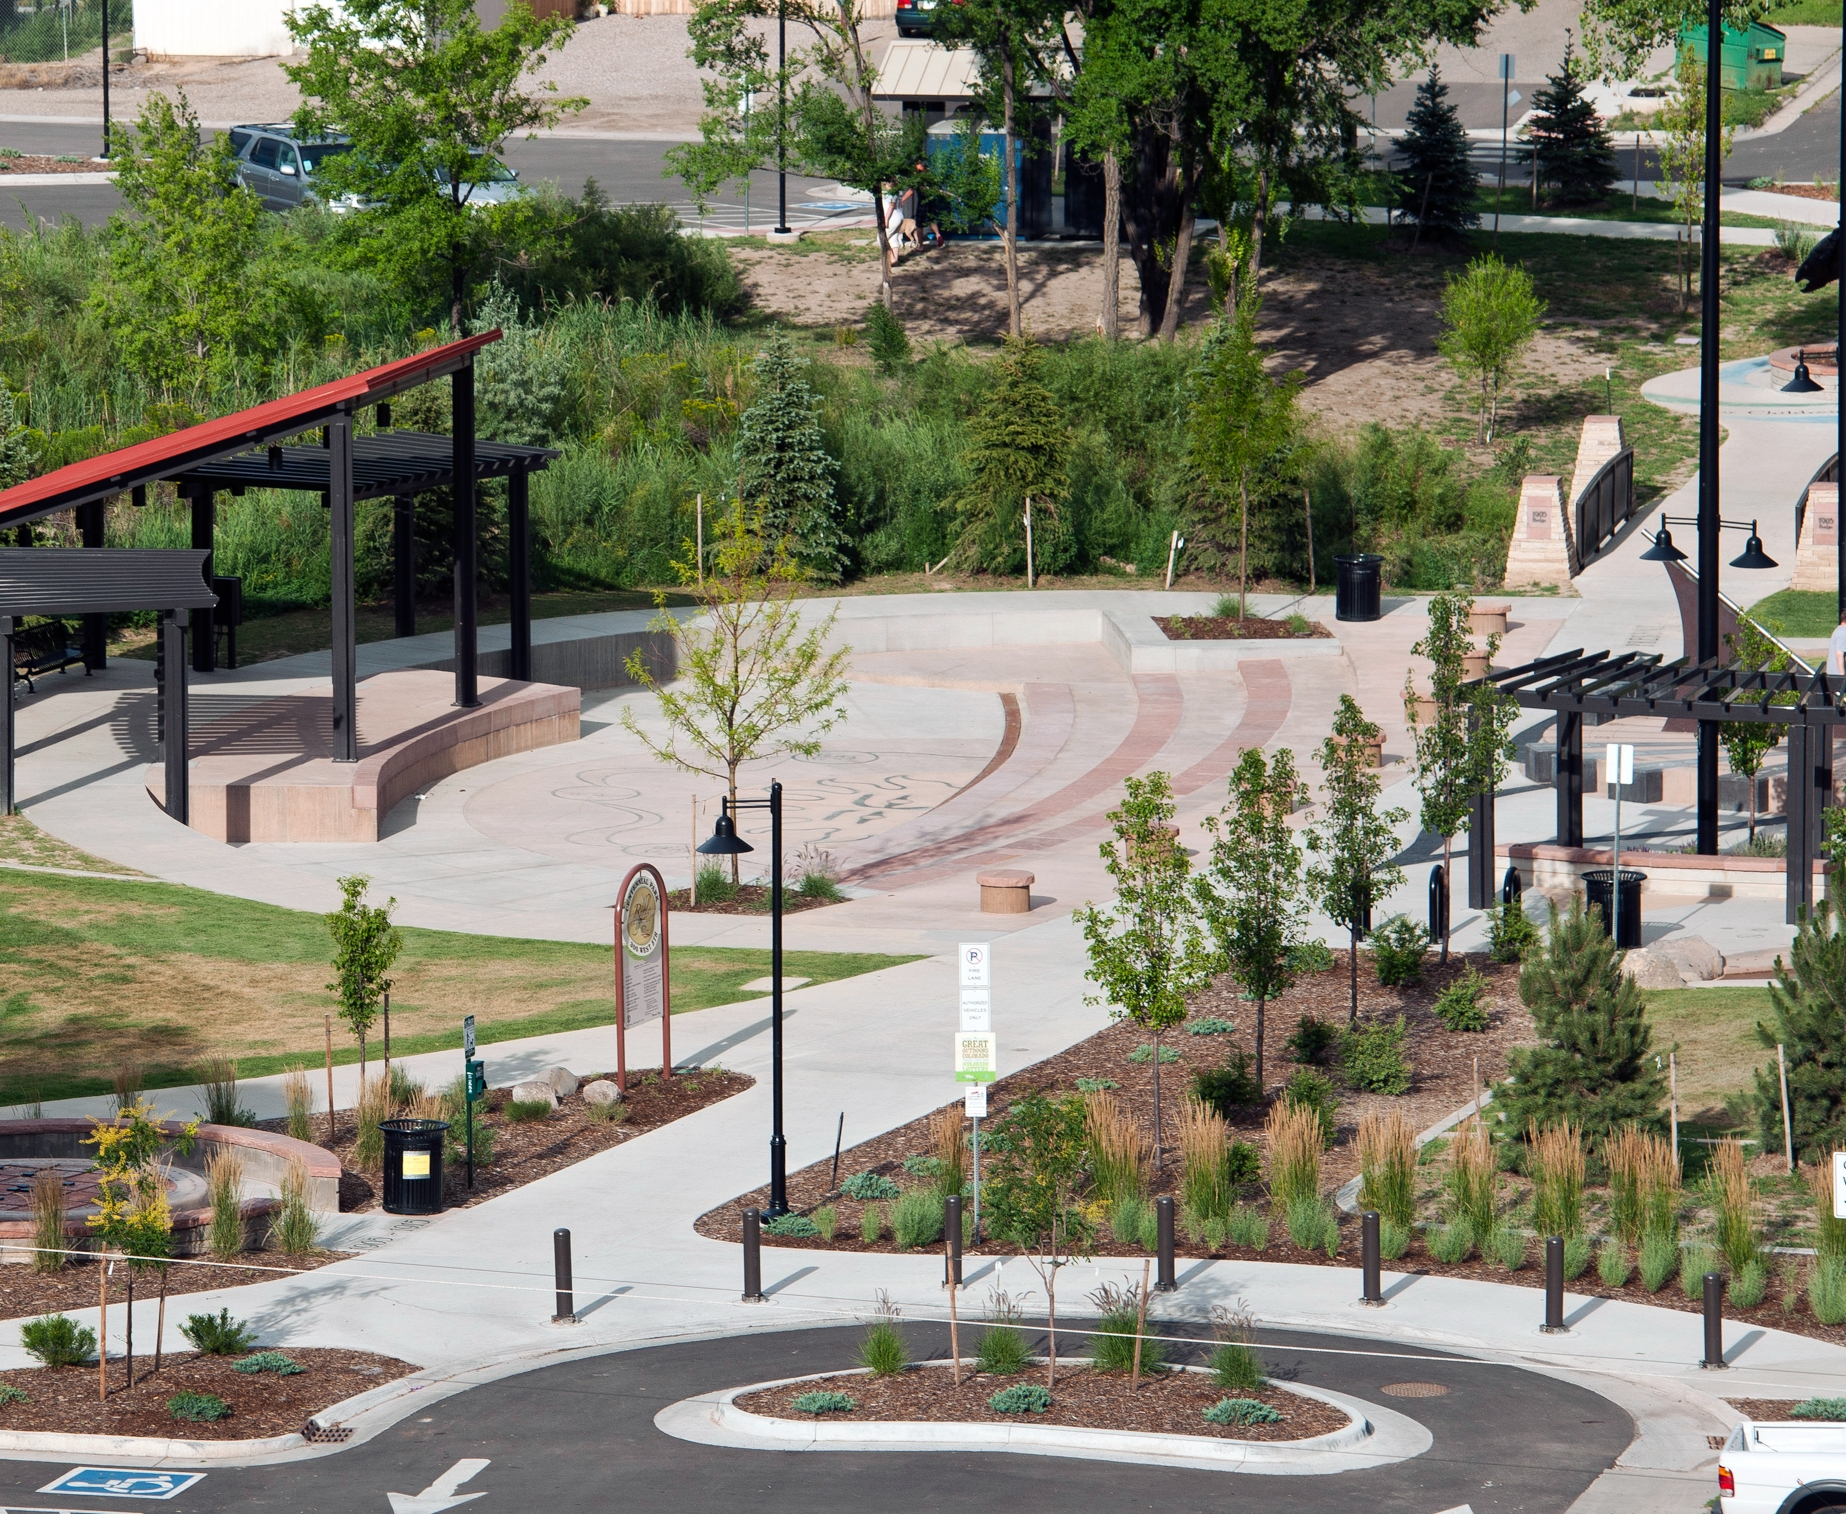 Centennial Park    in Rifle, Colorado, provides walking accessibility throughout the city as well as plenty of ways for residents to get physical activity: playgrounds, a splash pad, bike trails, and nature paths.